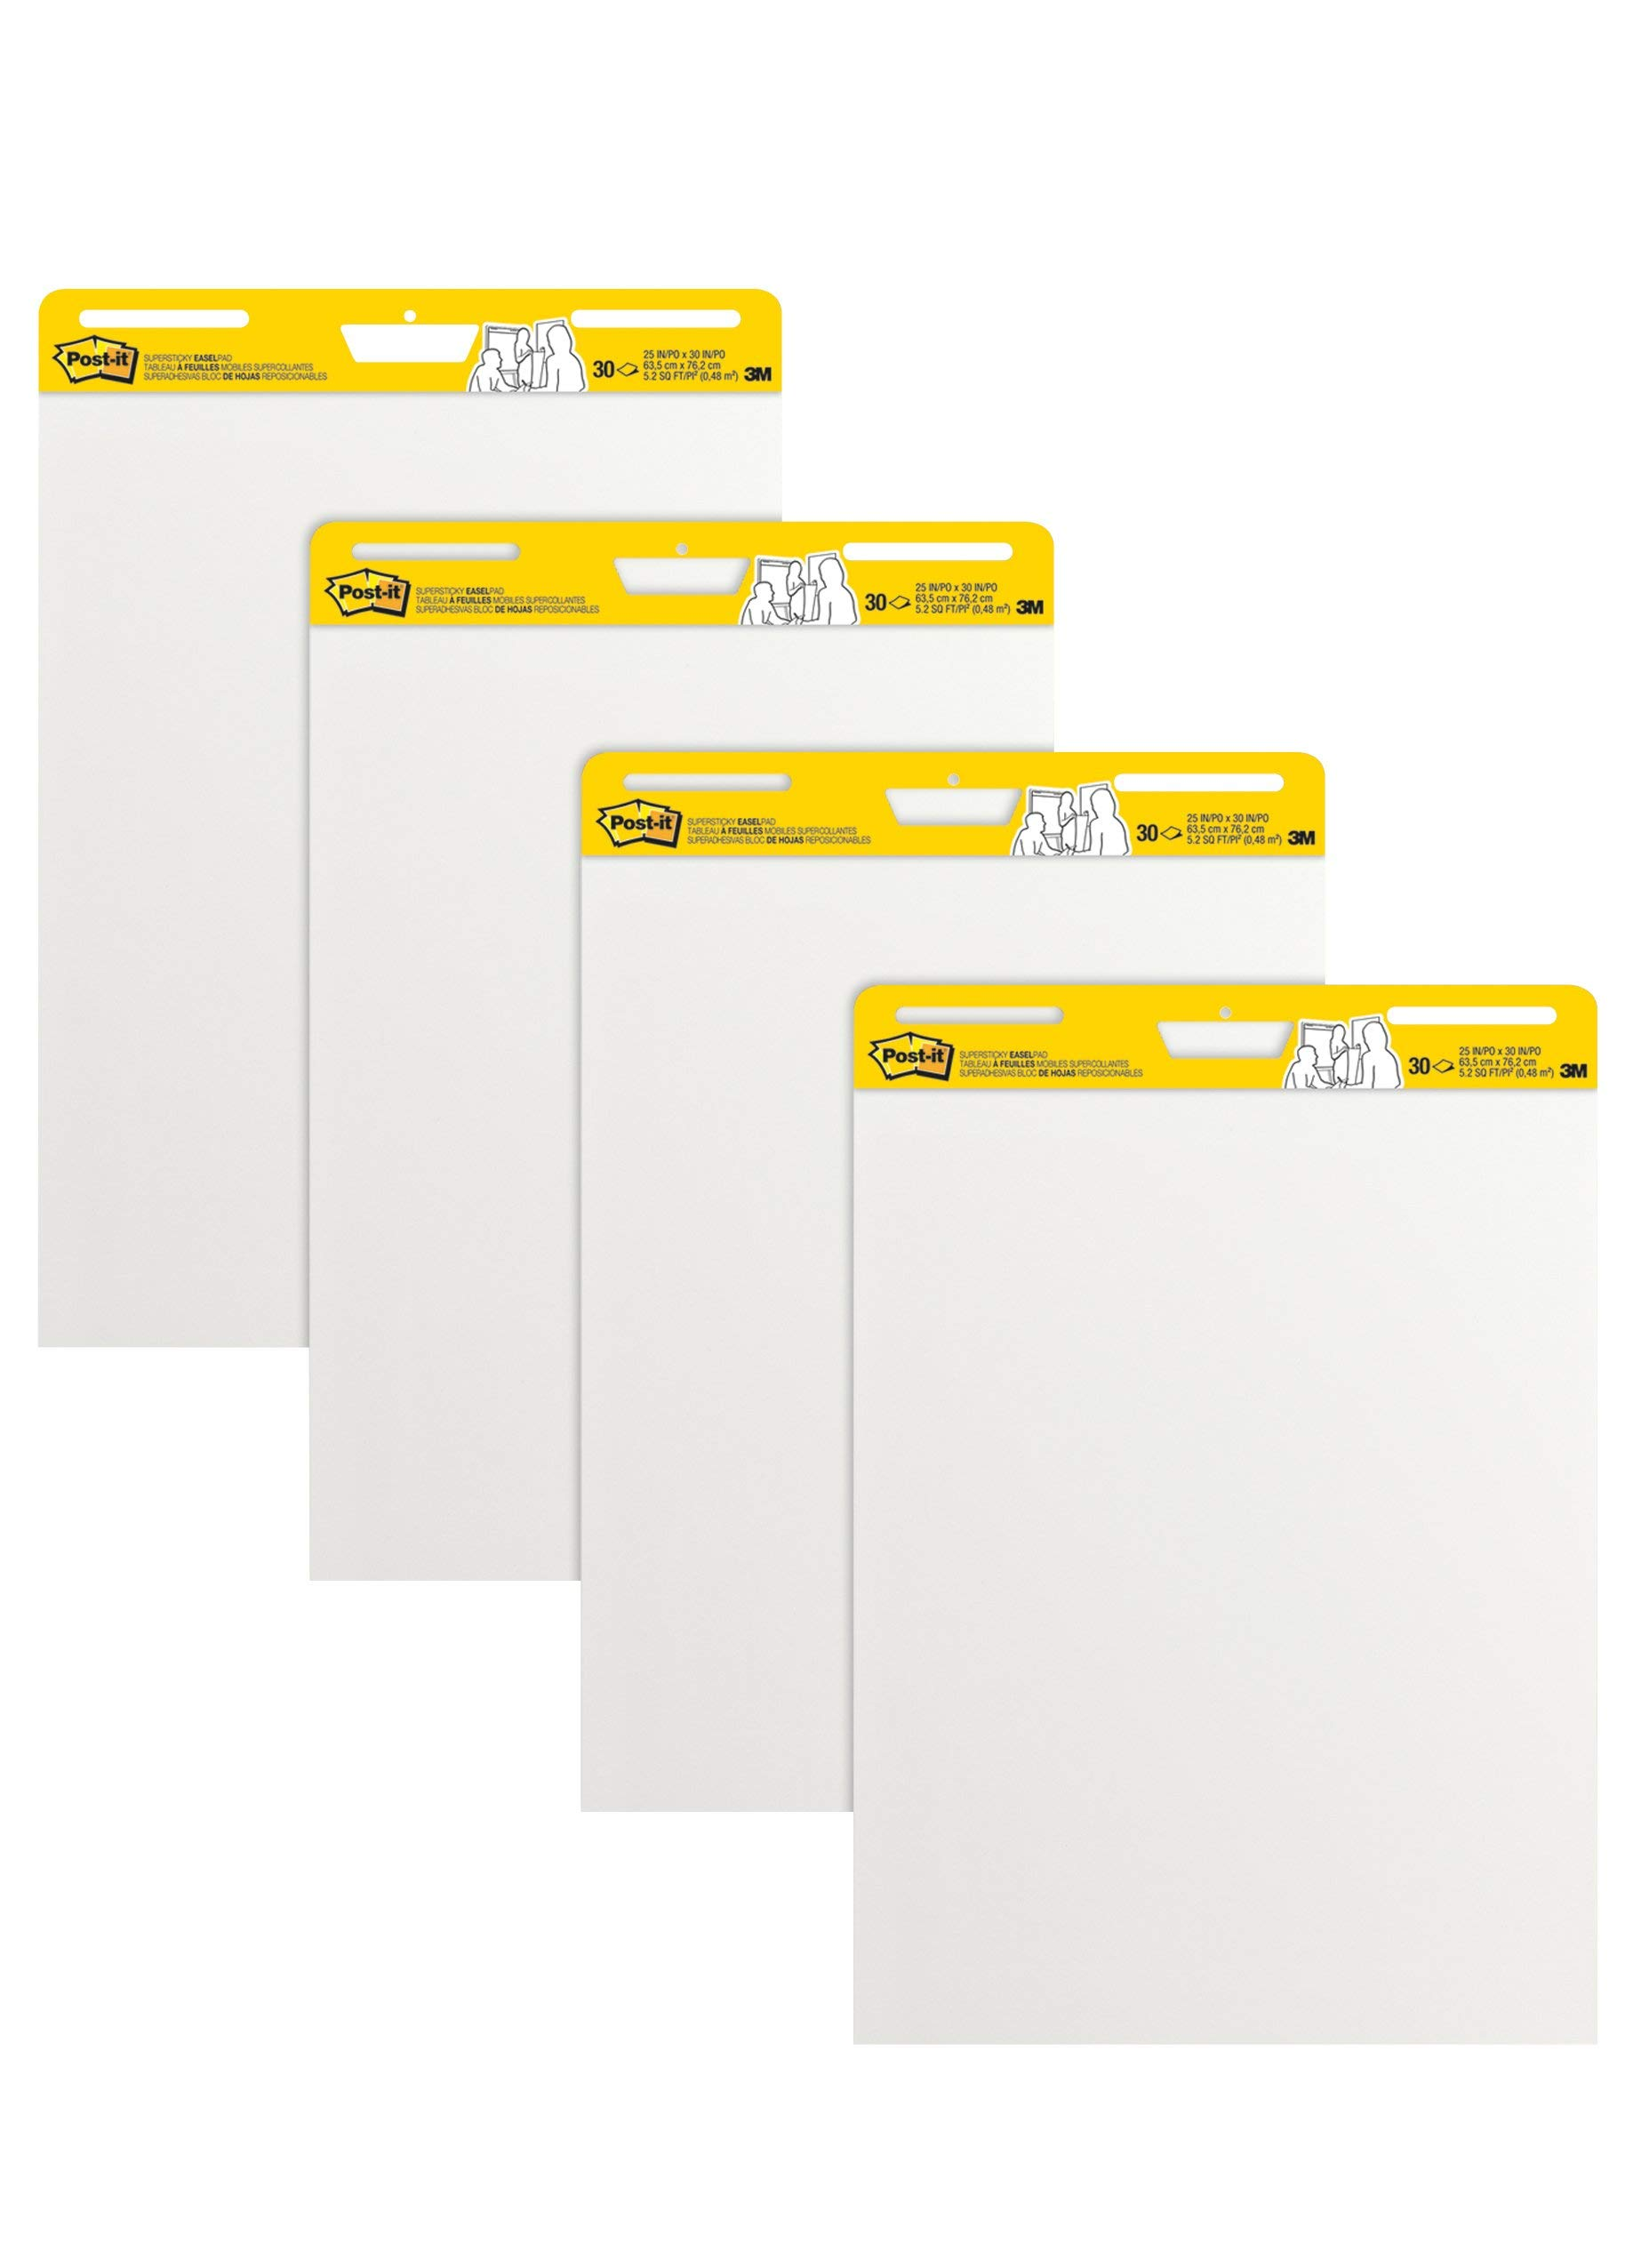 Post-it Super Sticky Easel Pad, 25 x 30 Inches, 30 Sheets/Pad, 4 Pads, Large White Premium Self Stick Flip Chart Paper, Super Sticking Power (559-4) (Renewed)